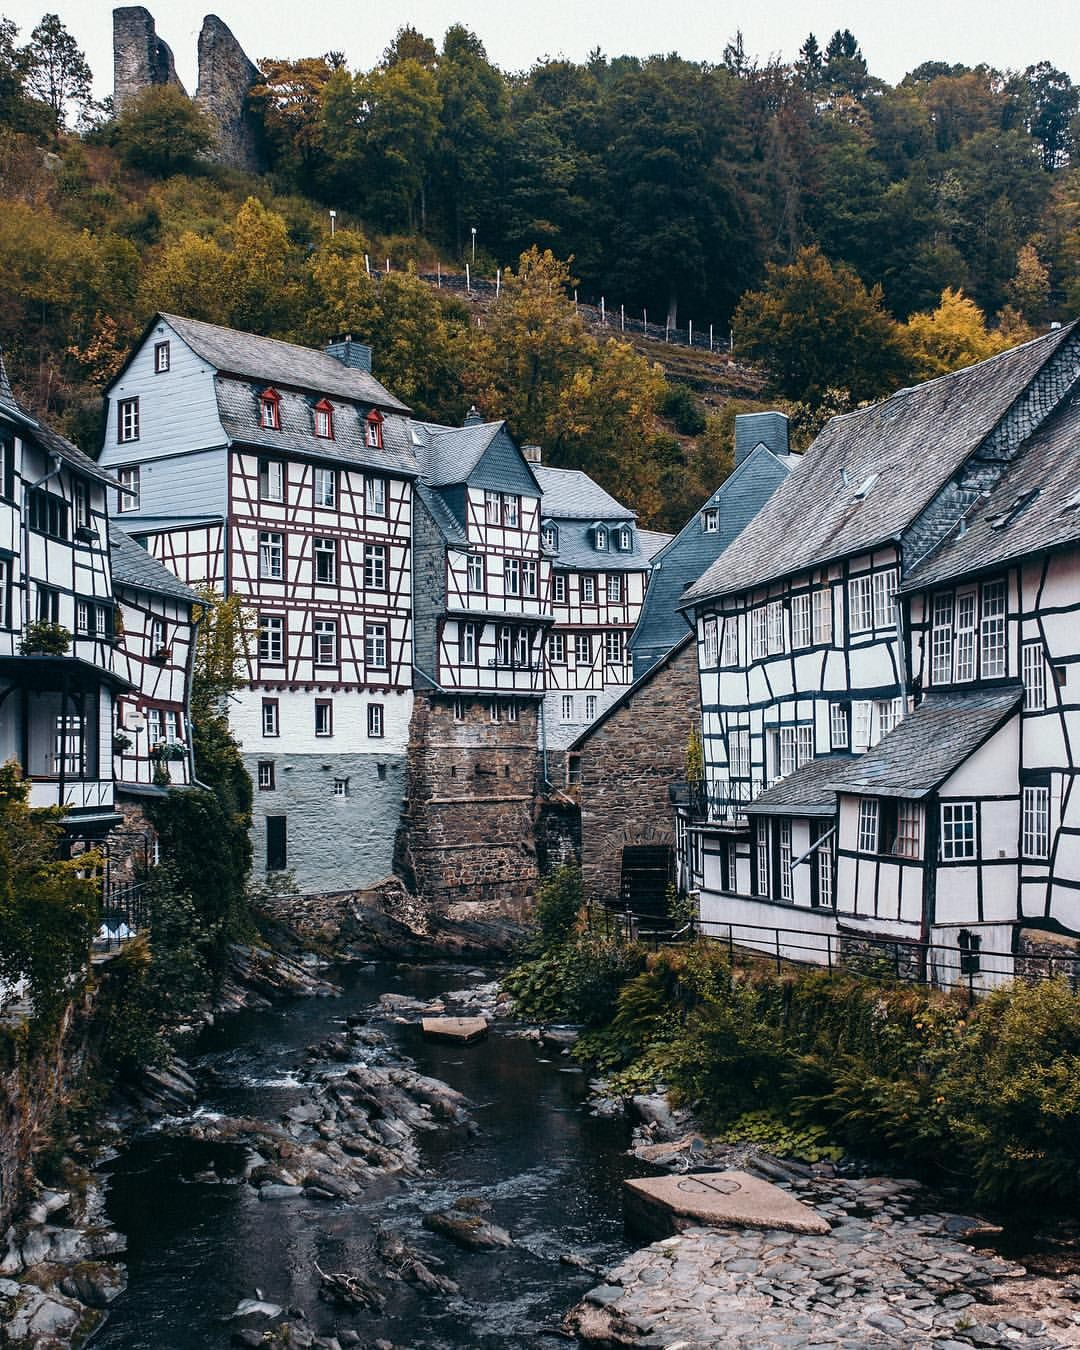 Monschau Nordrhein Westfalen Deutschland Over The River Monschau Cute House